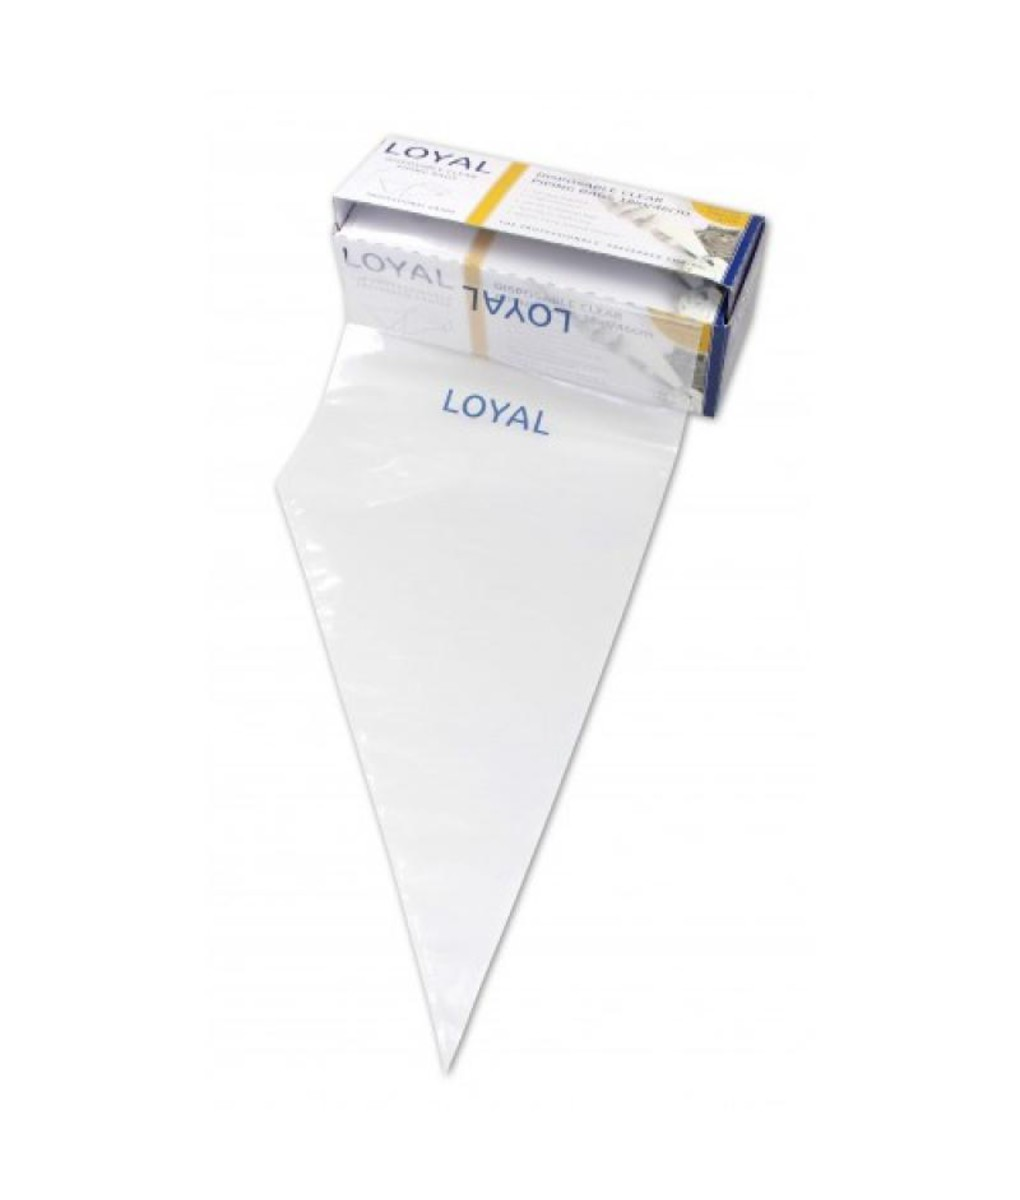 Boxed Disposable Piping Bags - Clear 46cm x 100